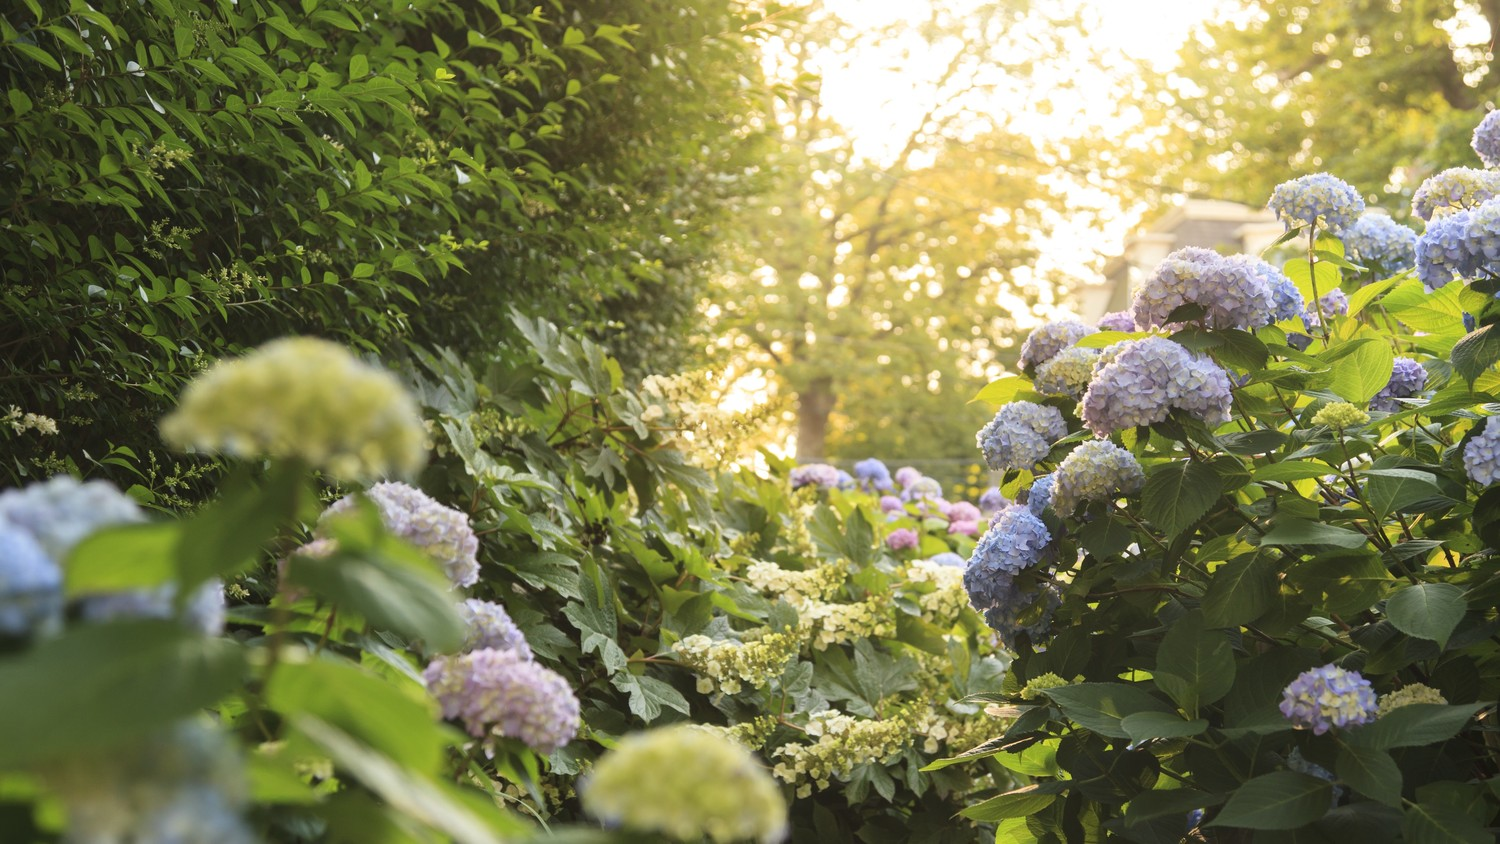 Your Guide to Growing and Caring for Three Popular Types of Hydrangeas